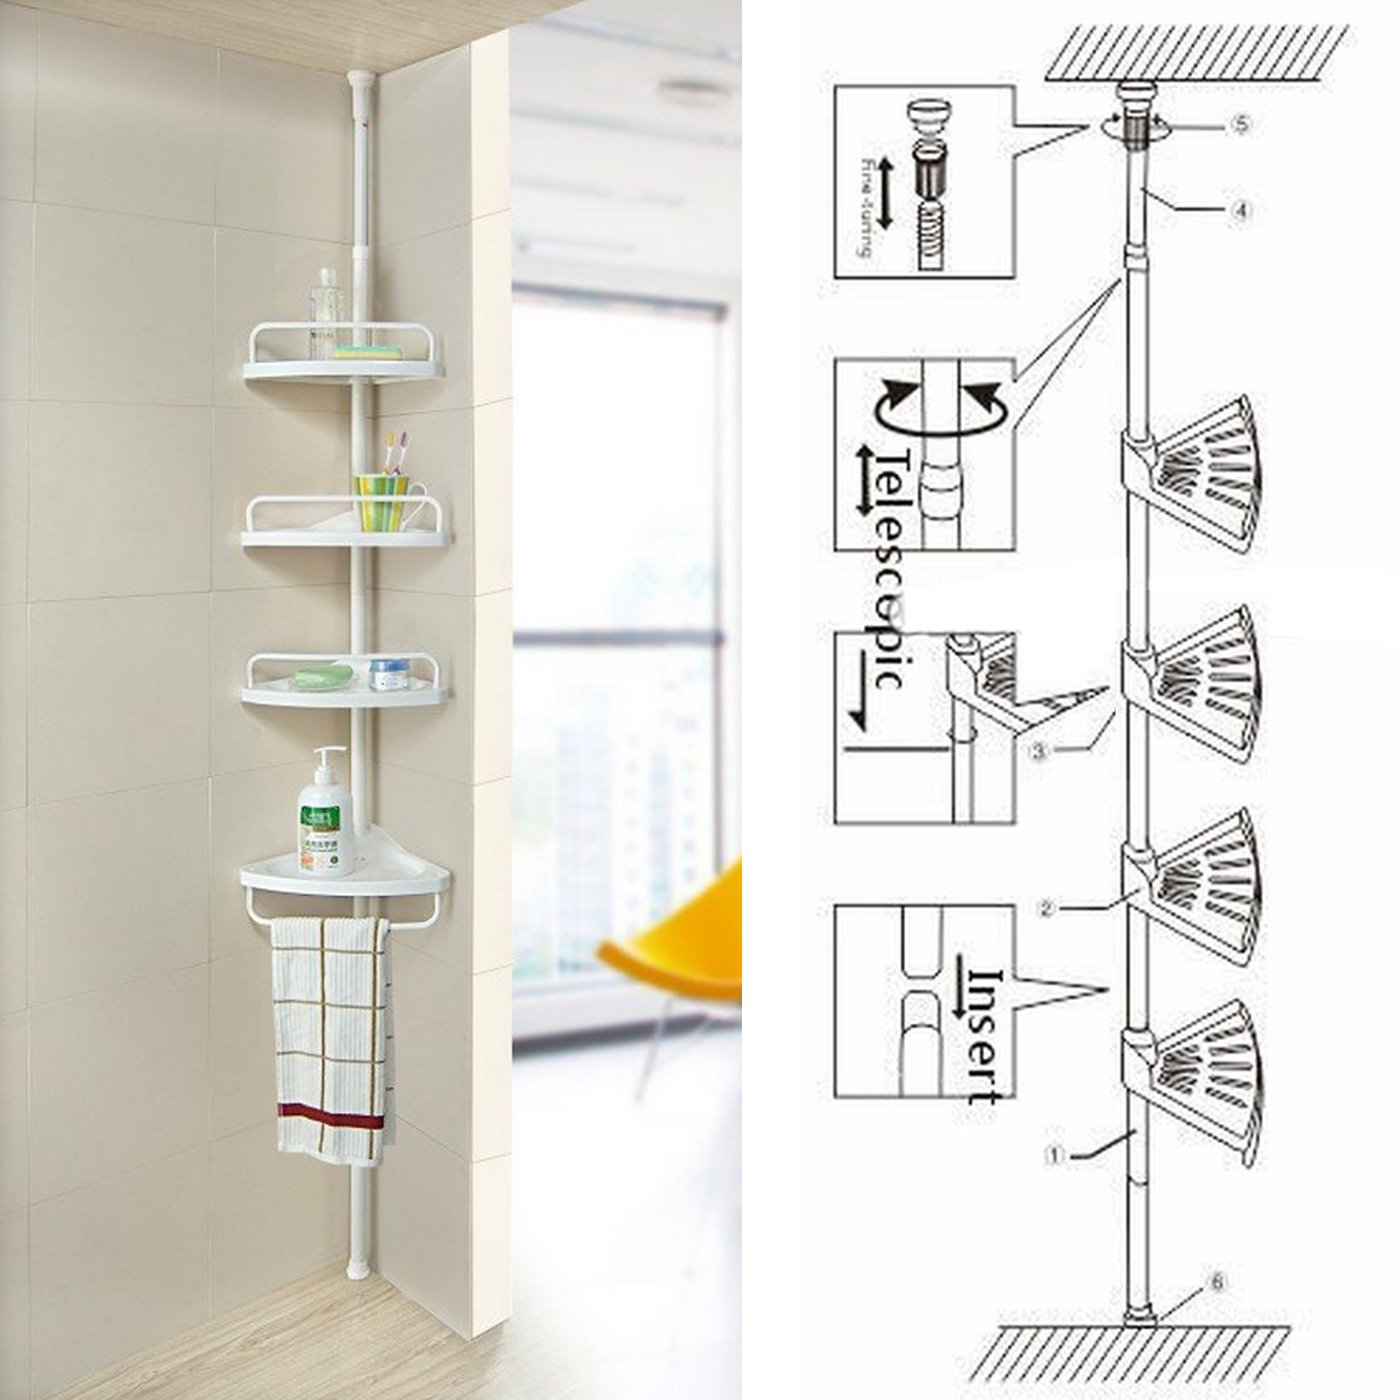 FunkyBuys® WHITE 4 Tier Adjustable 70-240cm Telescopic Shelf Bathroom Organiser Home New SI-079-4TierCornerwhite